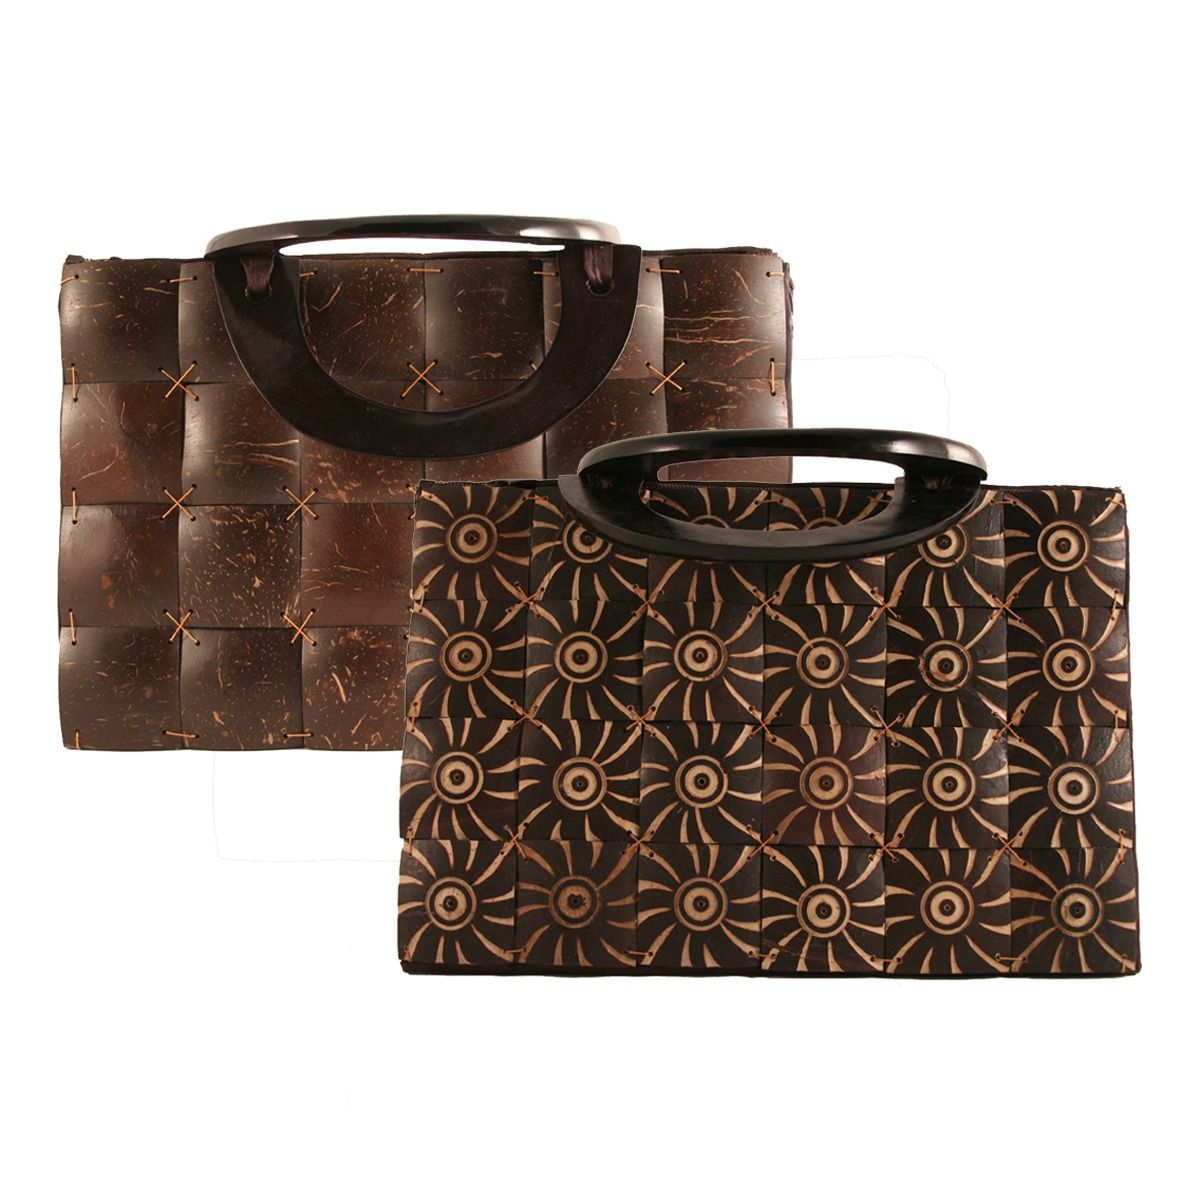 Coconut Shell Bags Eco Products Coconut Shell Crafts Coconut